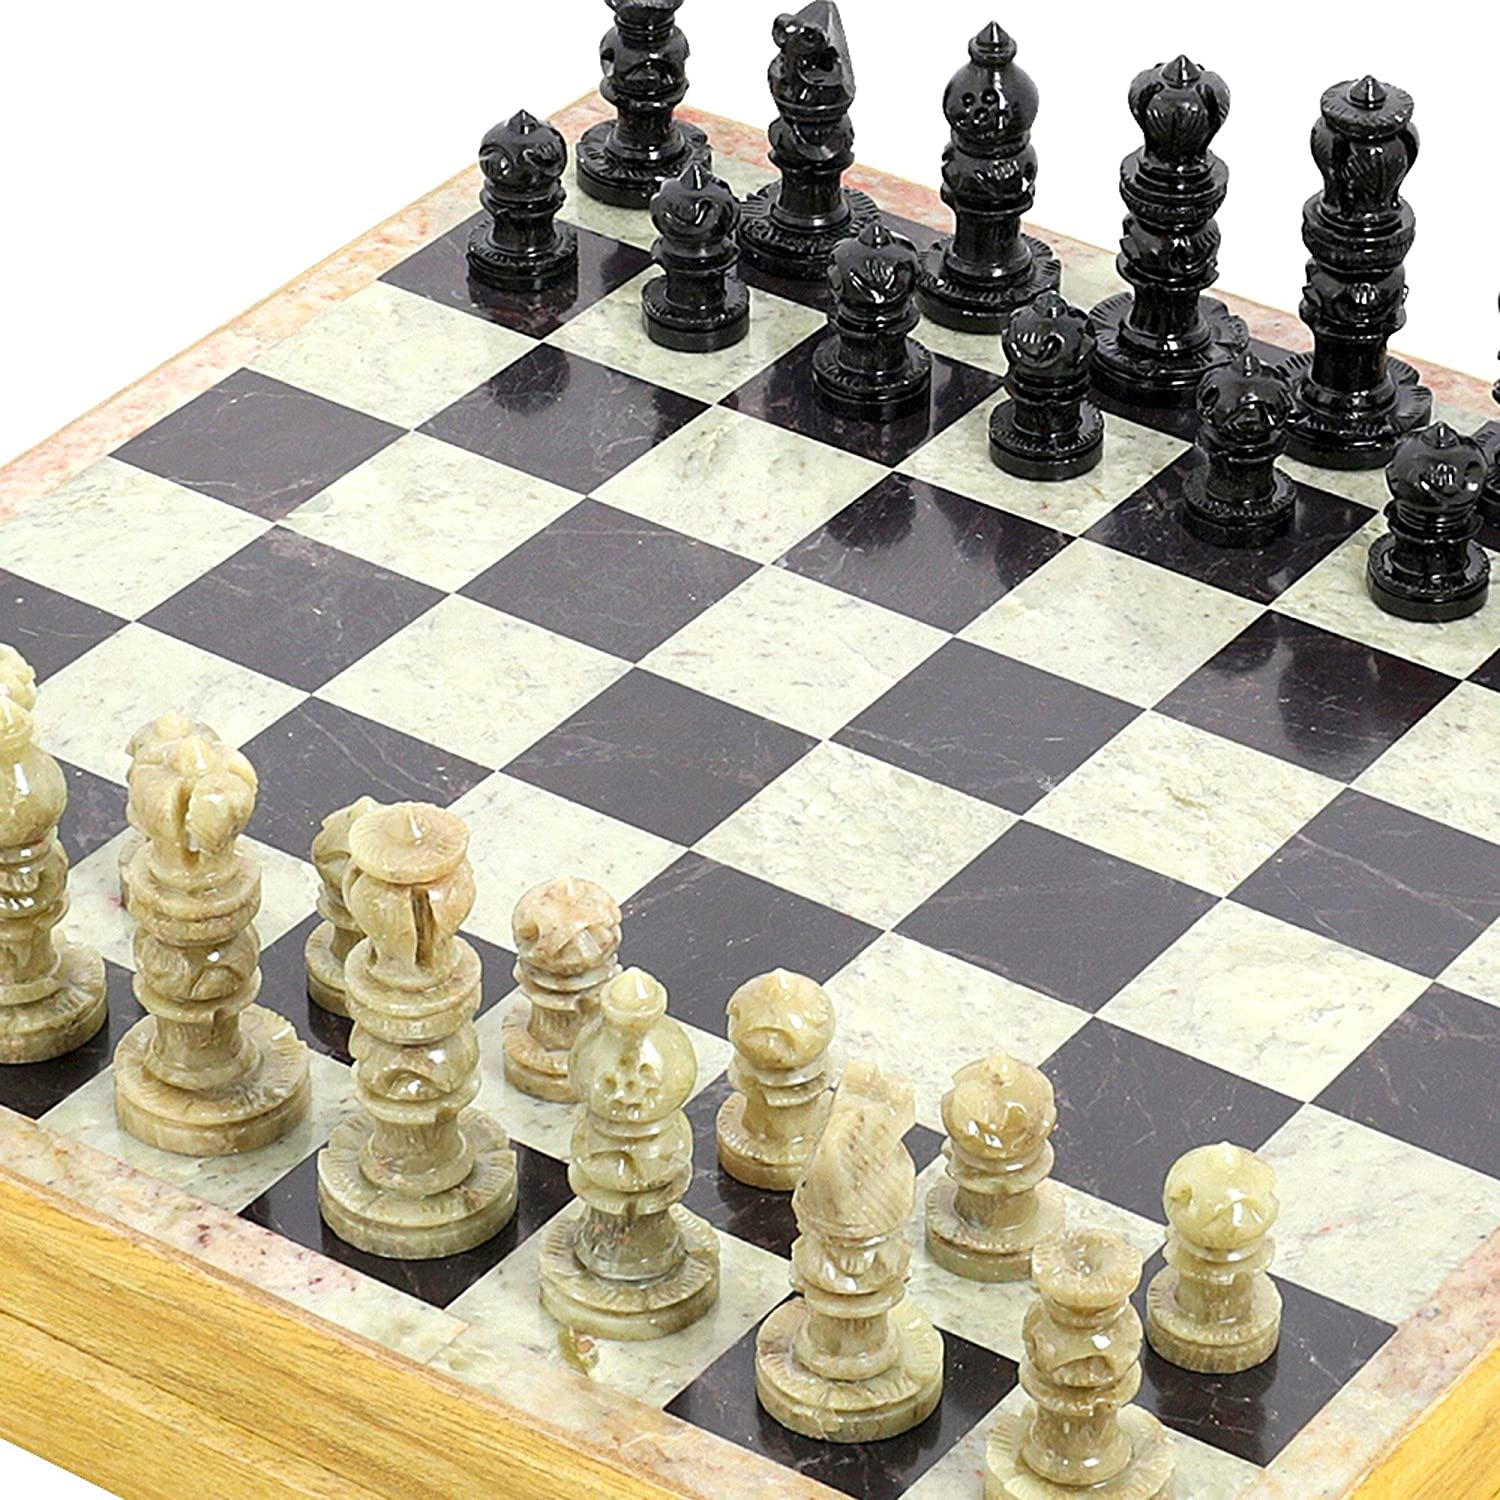 enjoyable ideas cheap chess sets. Amazon com  Rajasthan Stone Art Unique Chess Sets and Board Toys Games